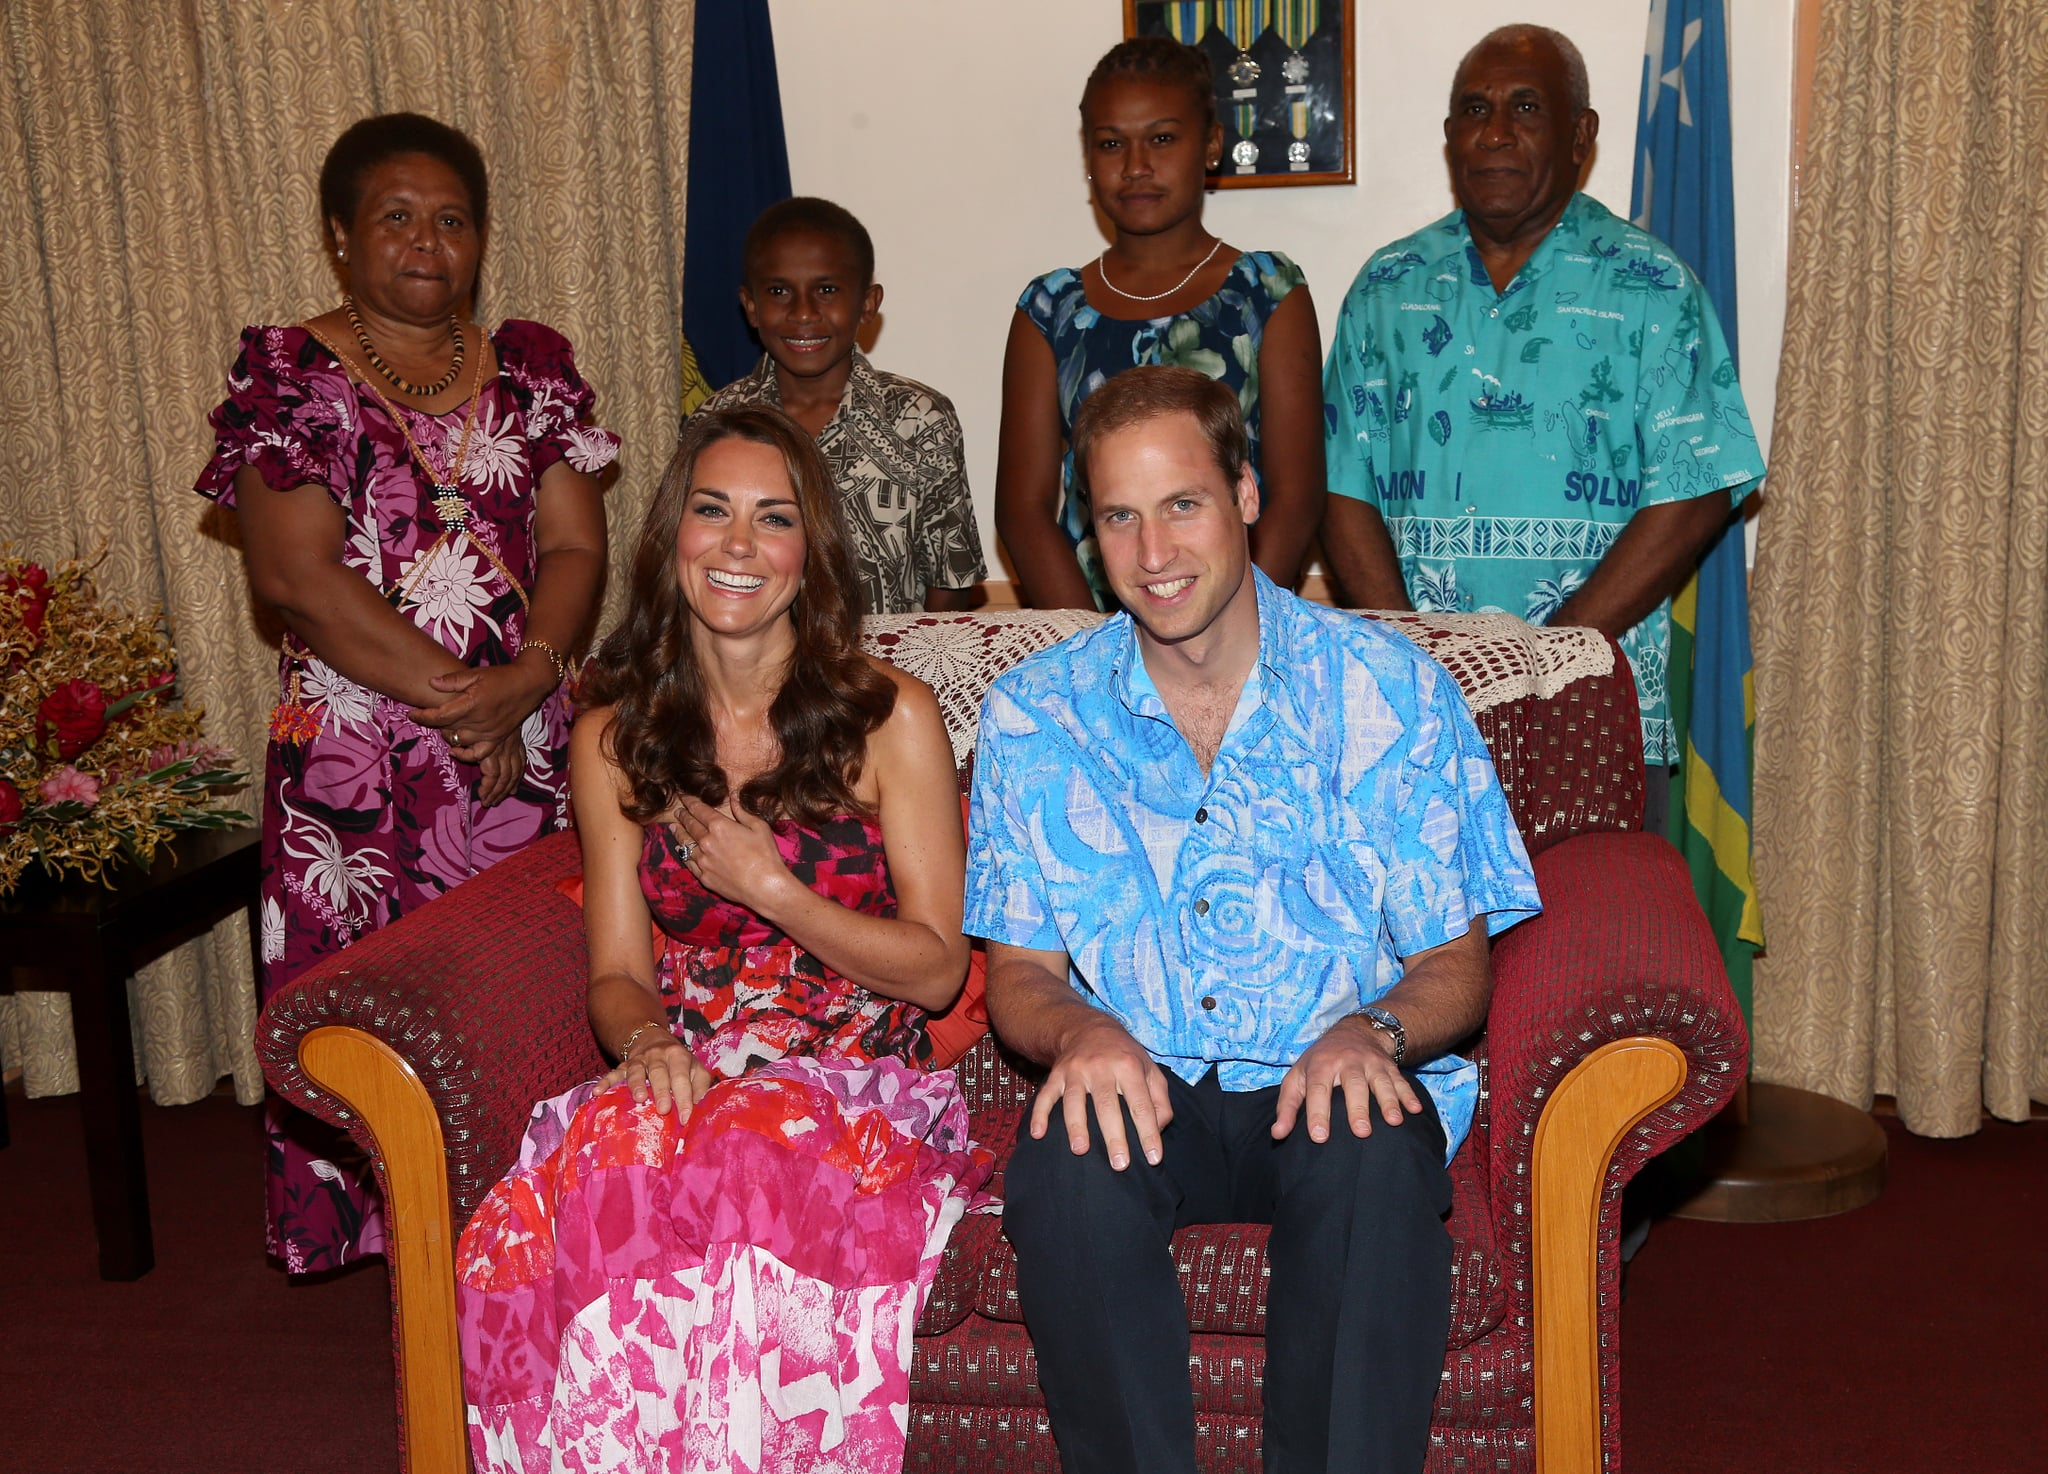 Kate and William wore traditional gear while visiting Guadalcanal Island in September 2012.